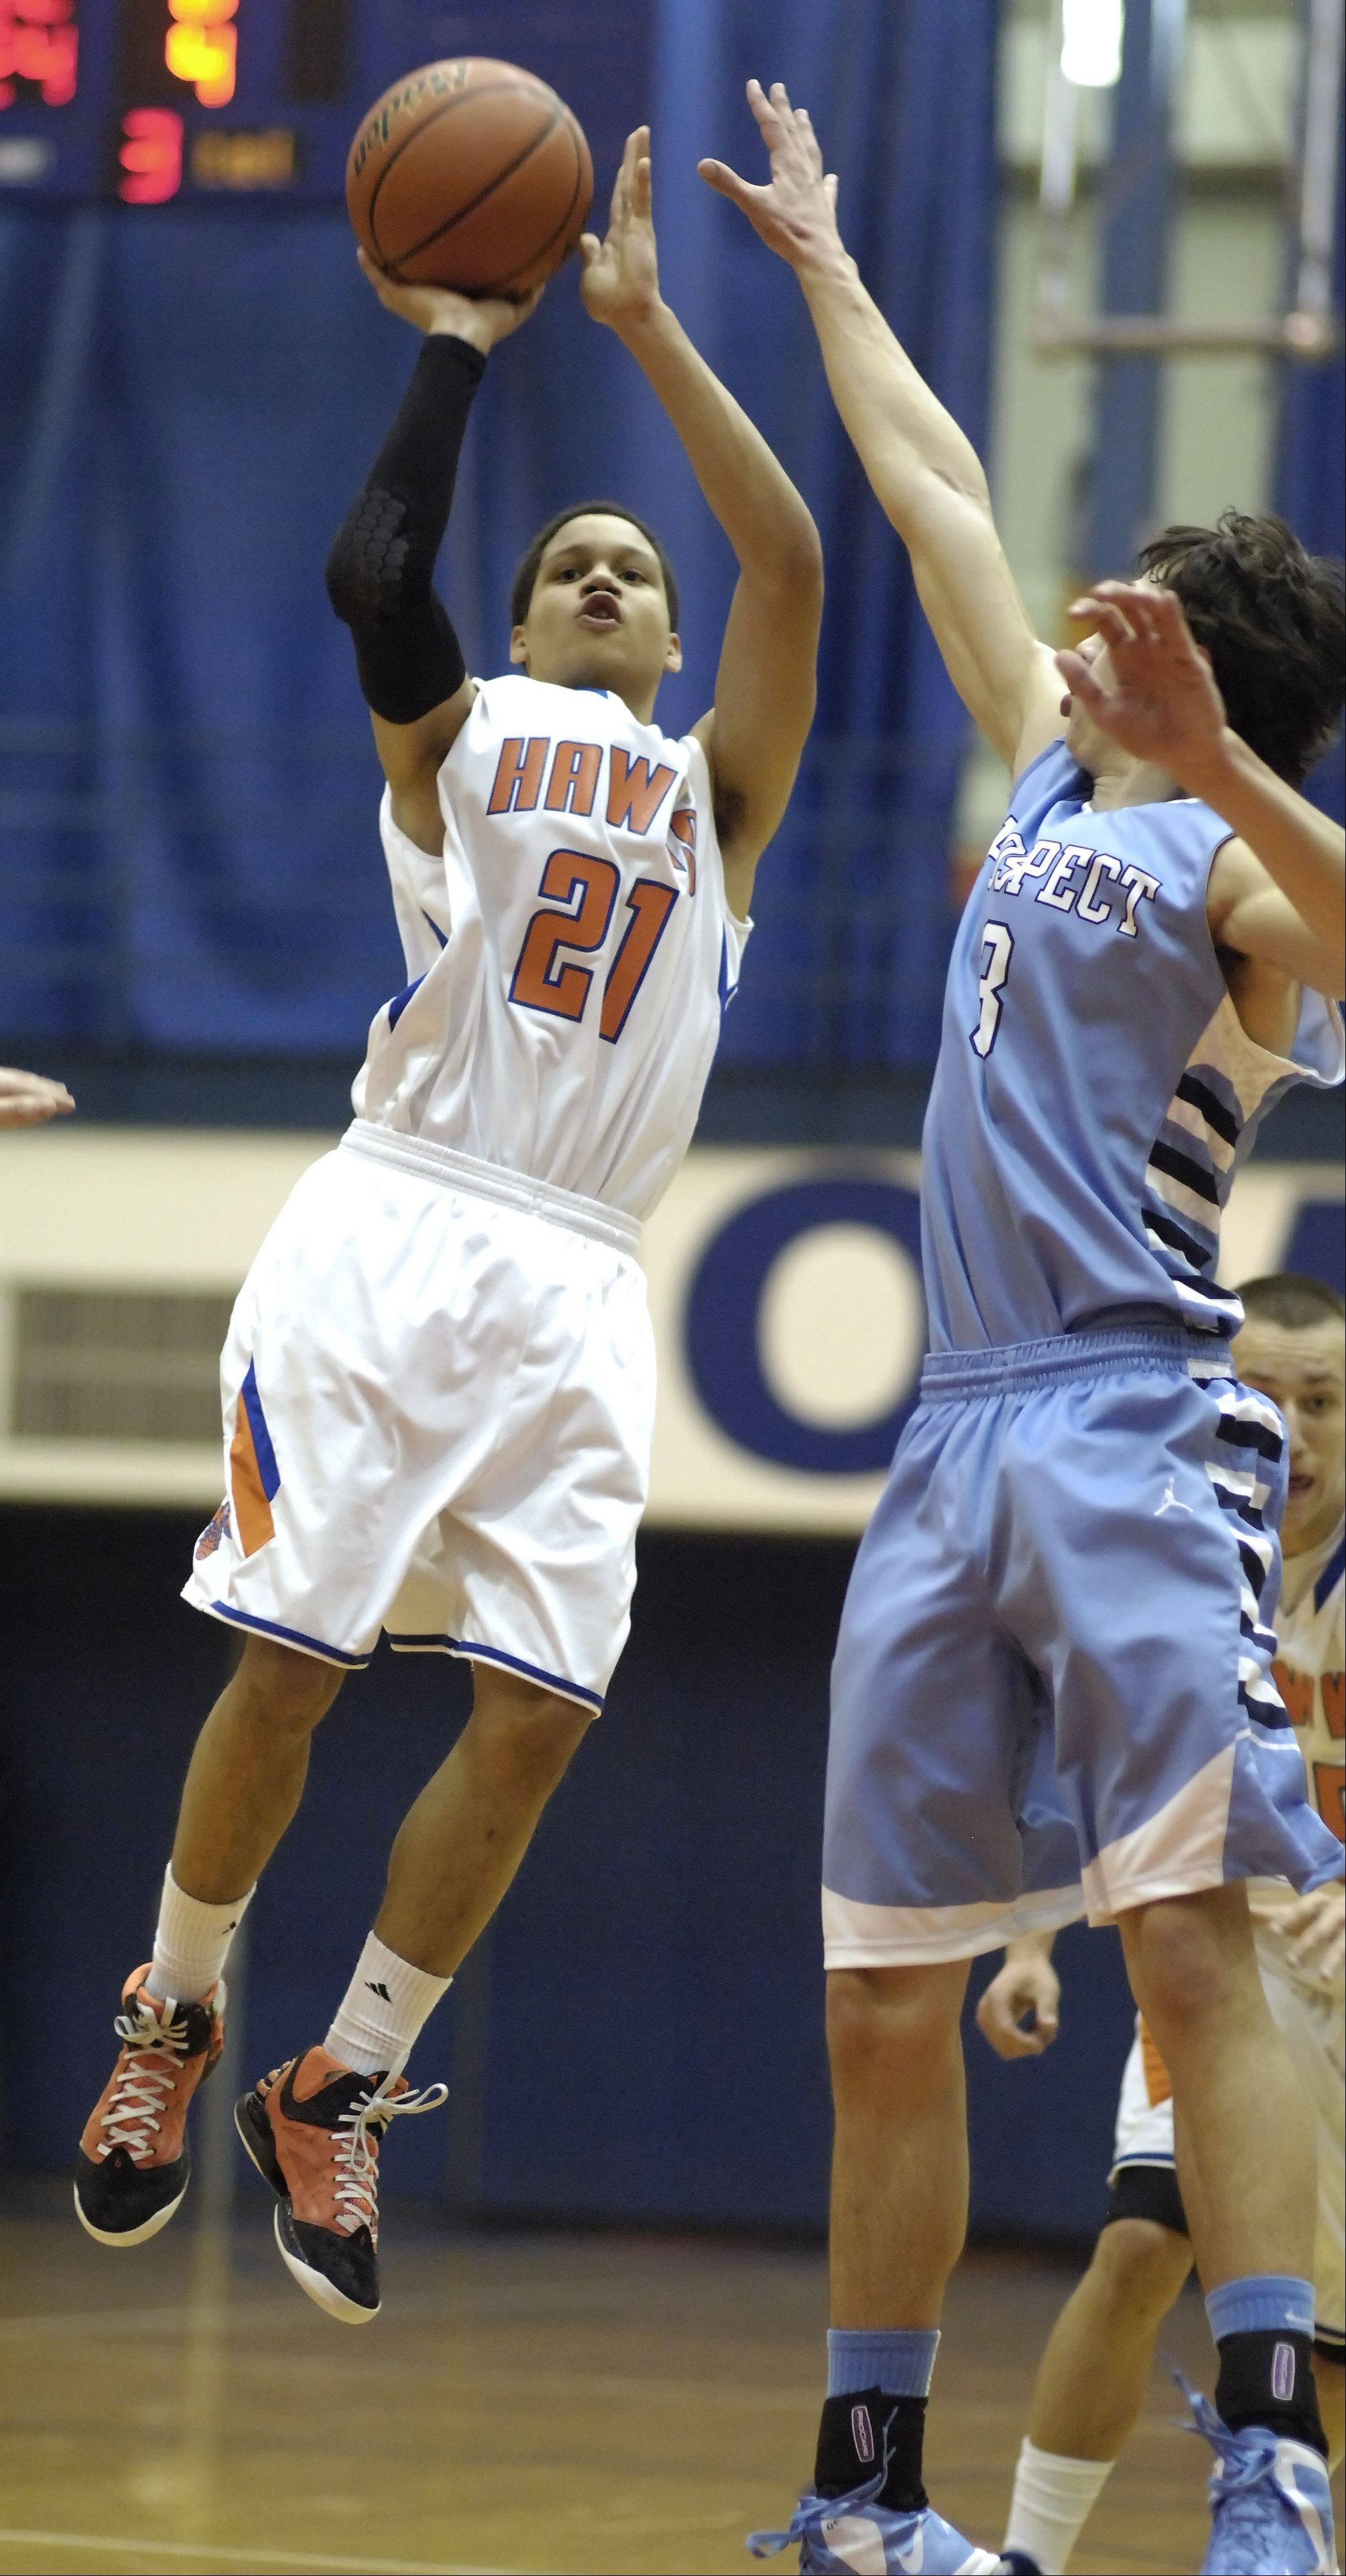 Hoffman Estates' Iziah Robinson takes a shot against Prospect's Bobby Frasco.